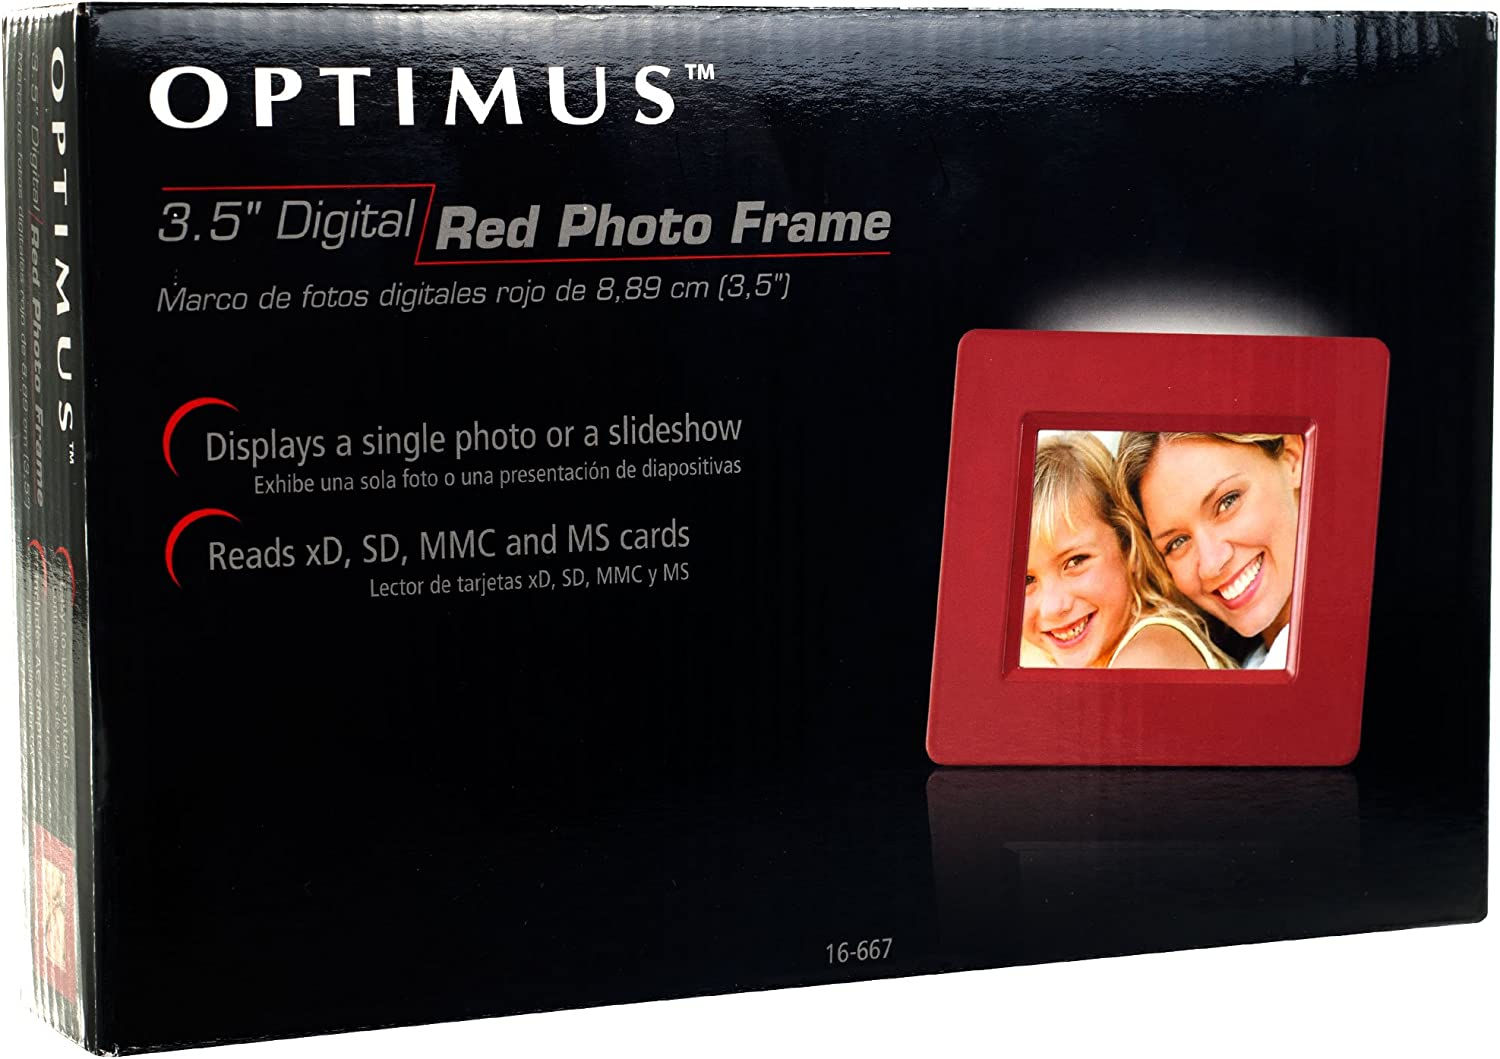 Pink 82-16668 Optimus 3.5-Inch LCD Digital Picture Frame